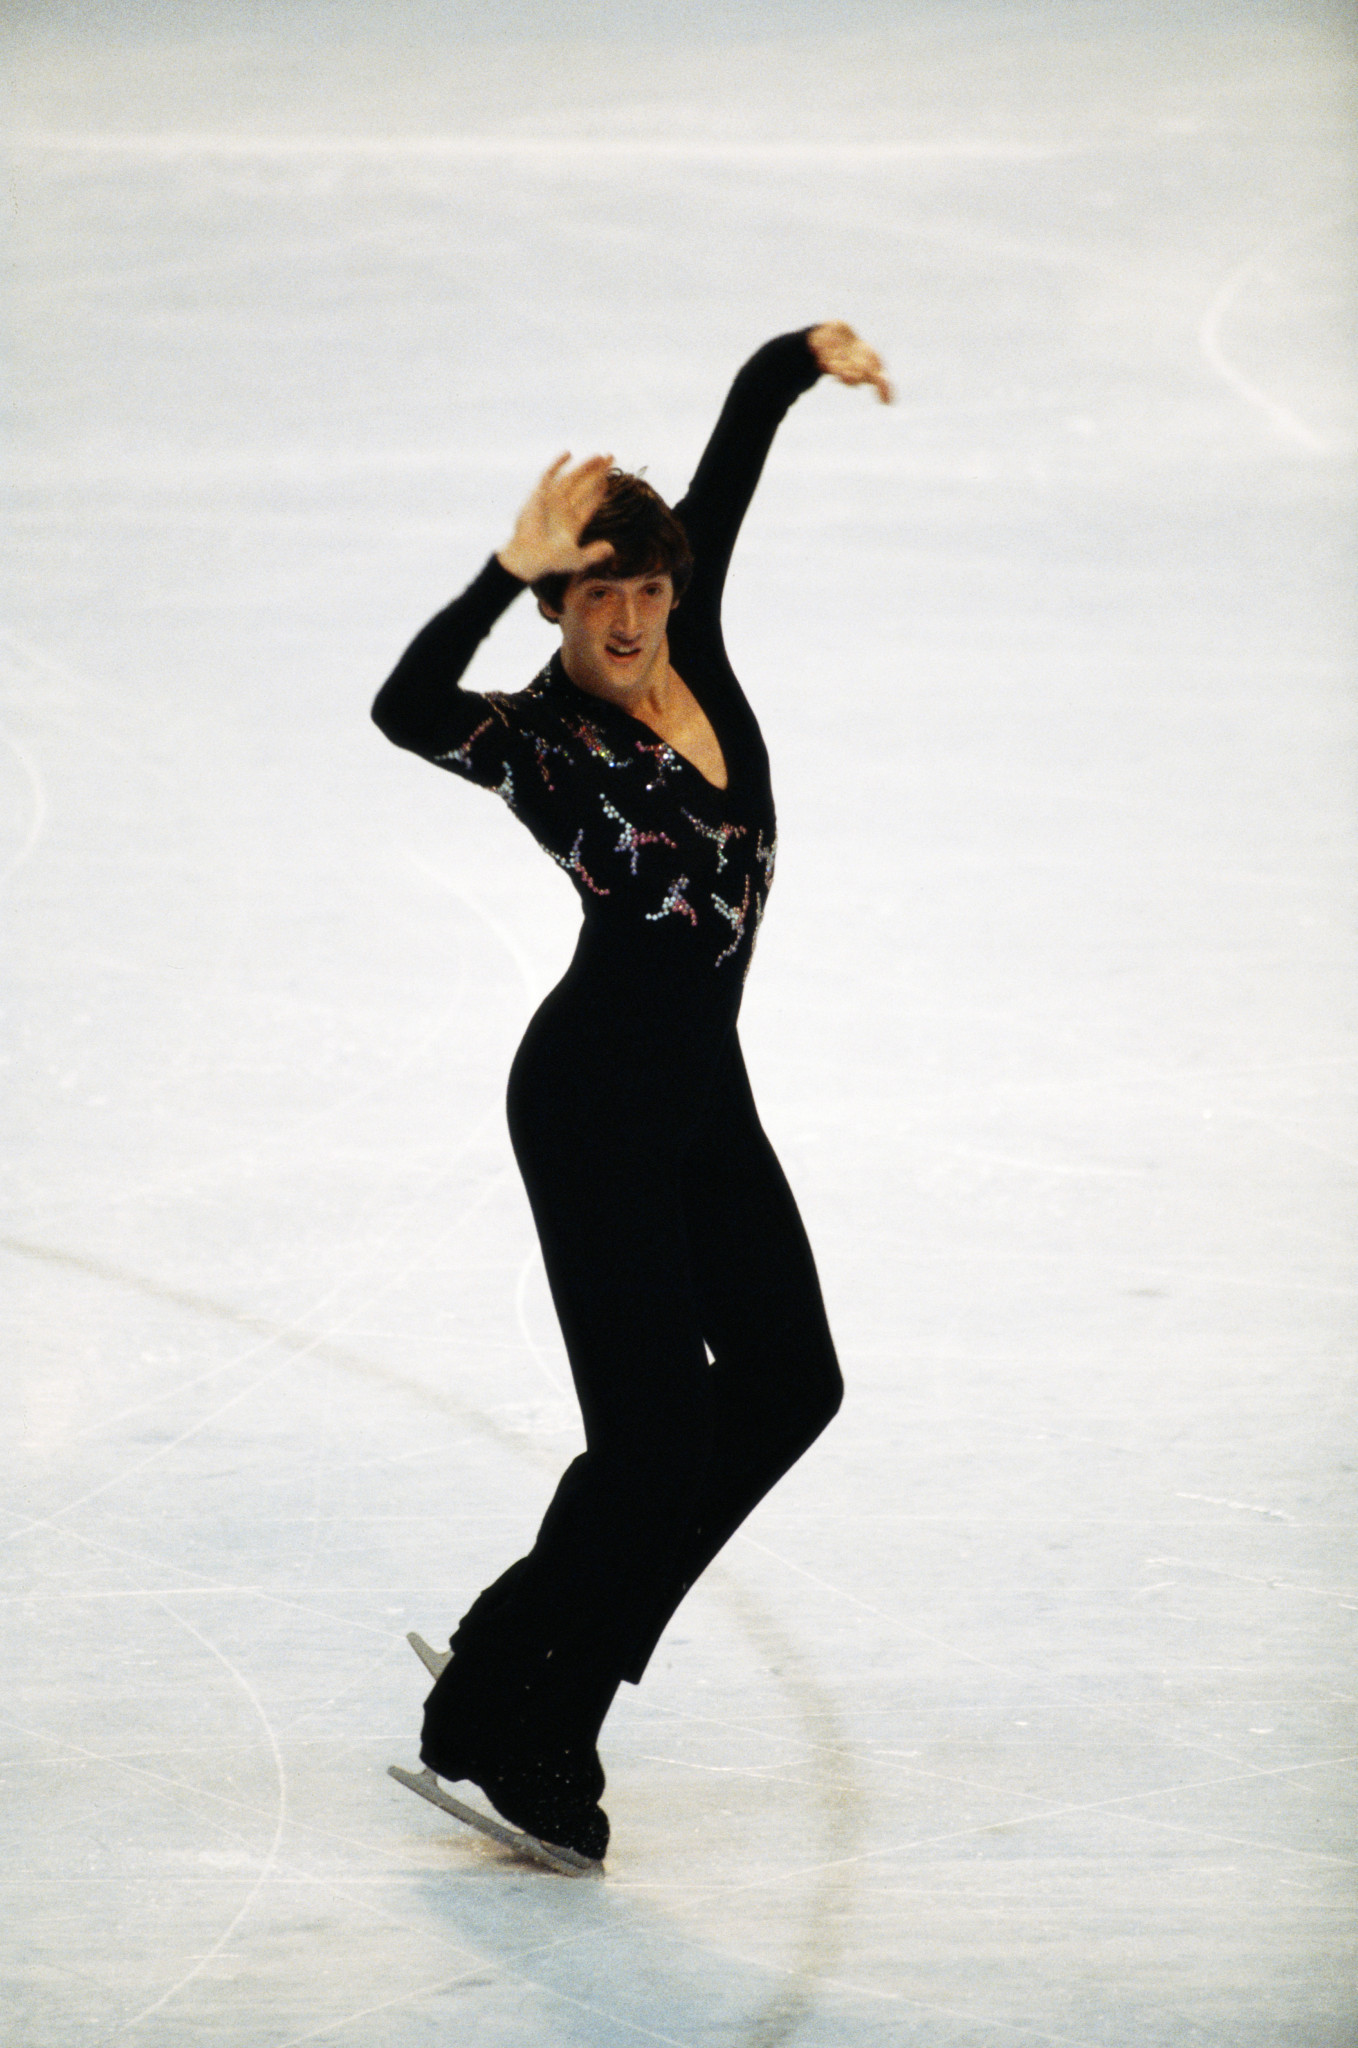 Robin Cousins won Olympic figure skating gold at Lake Placid 1980 ©Getty Images